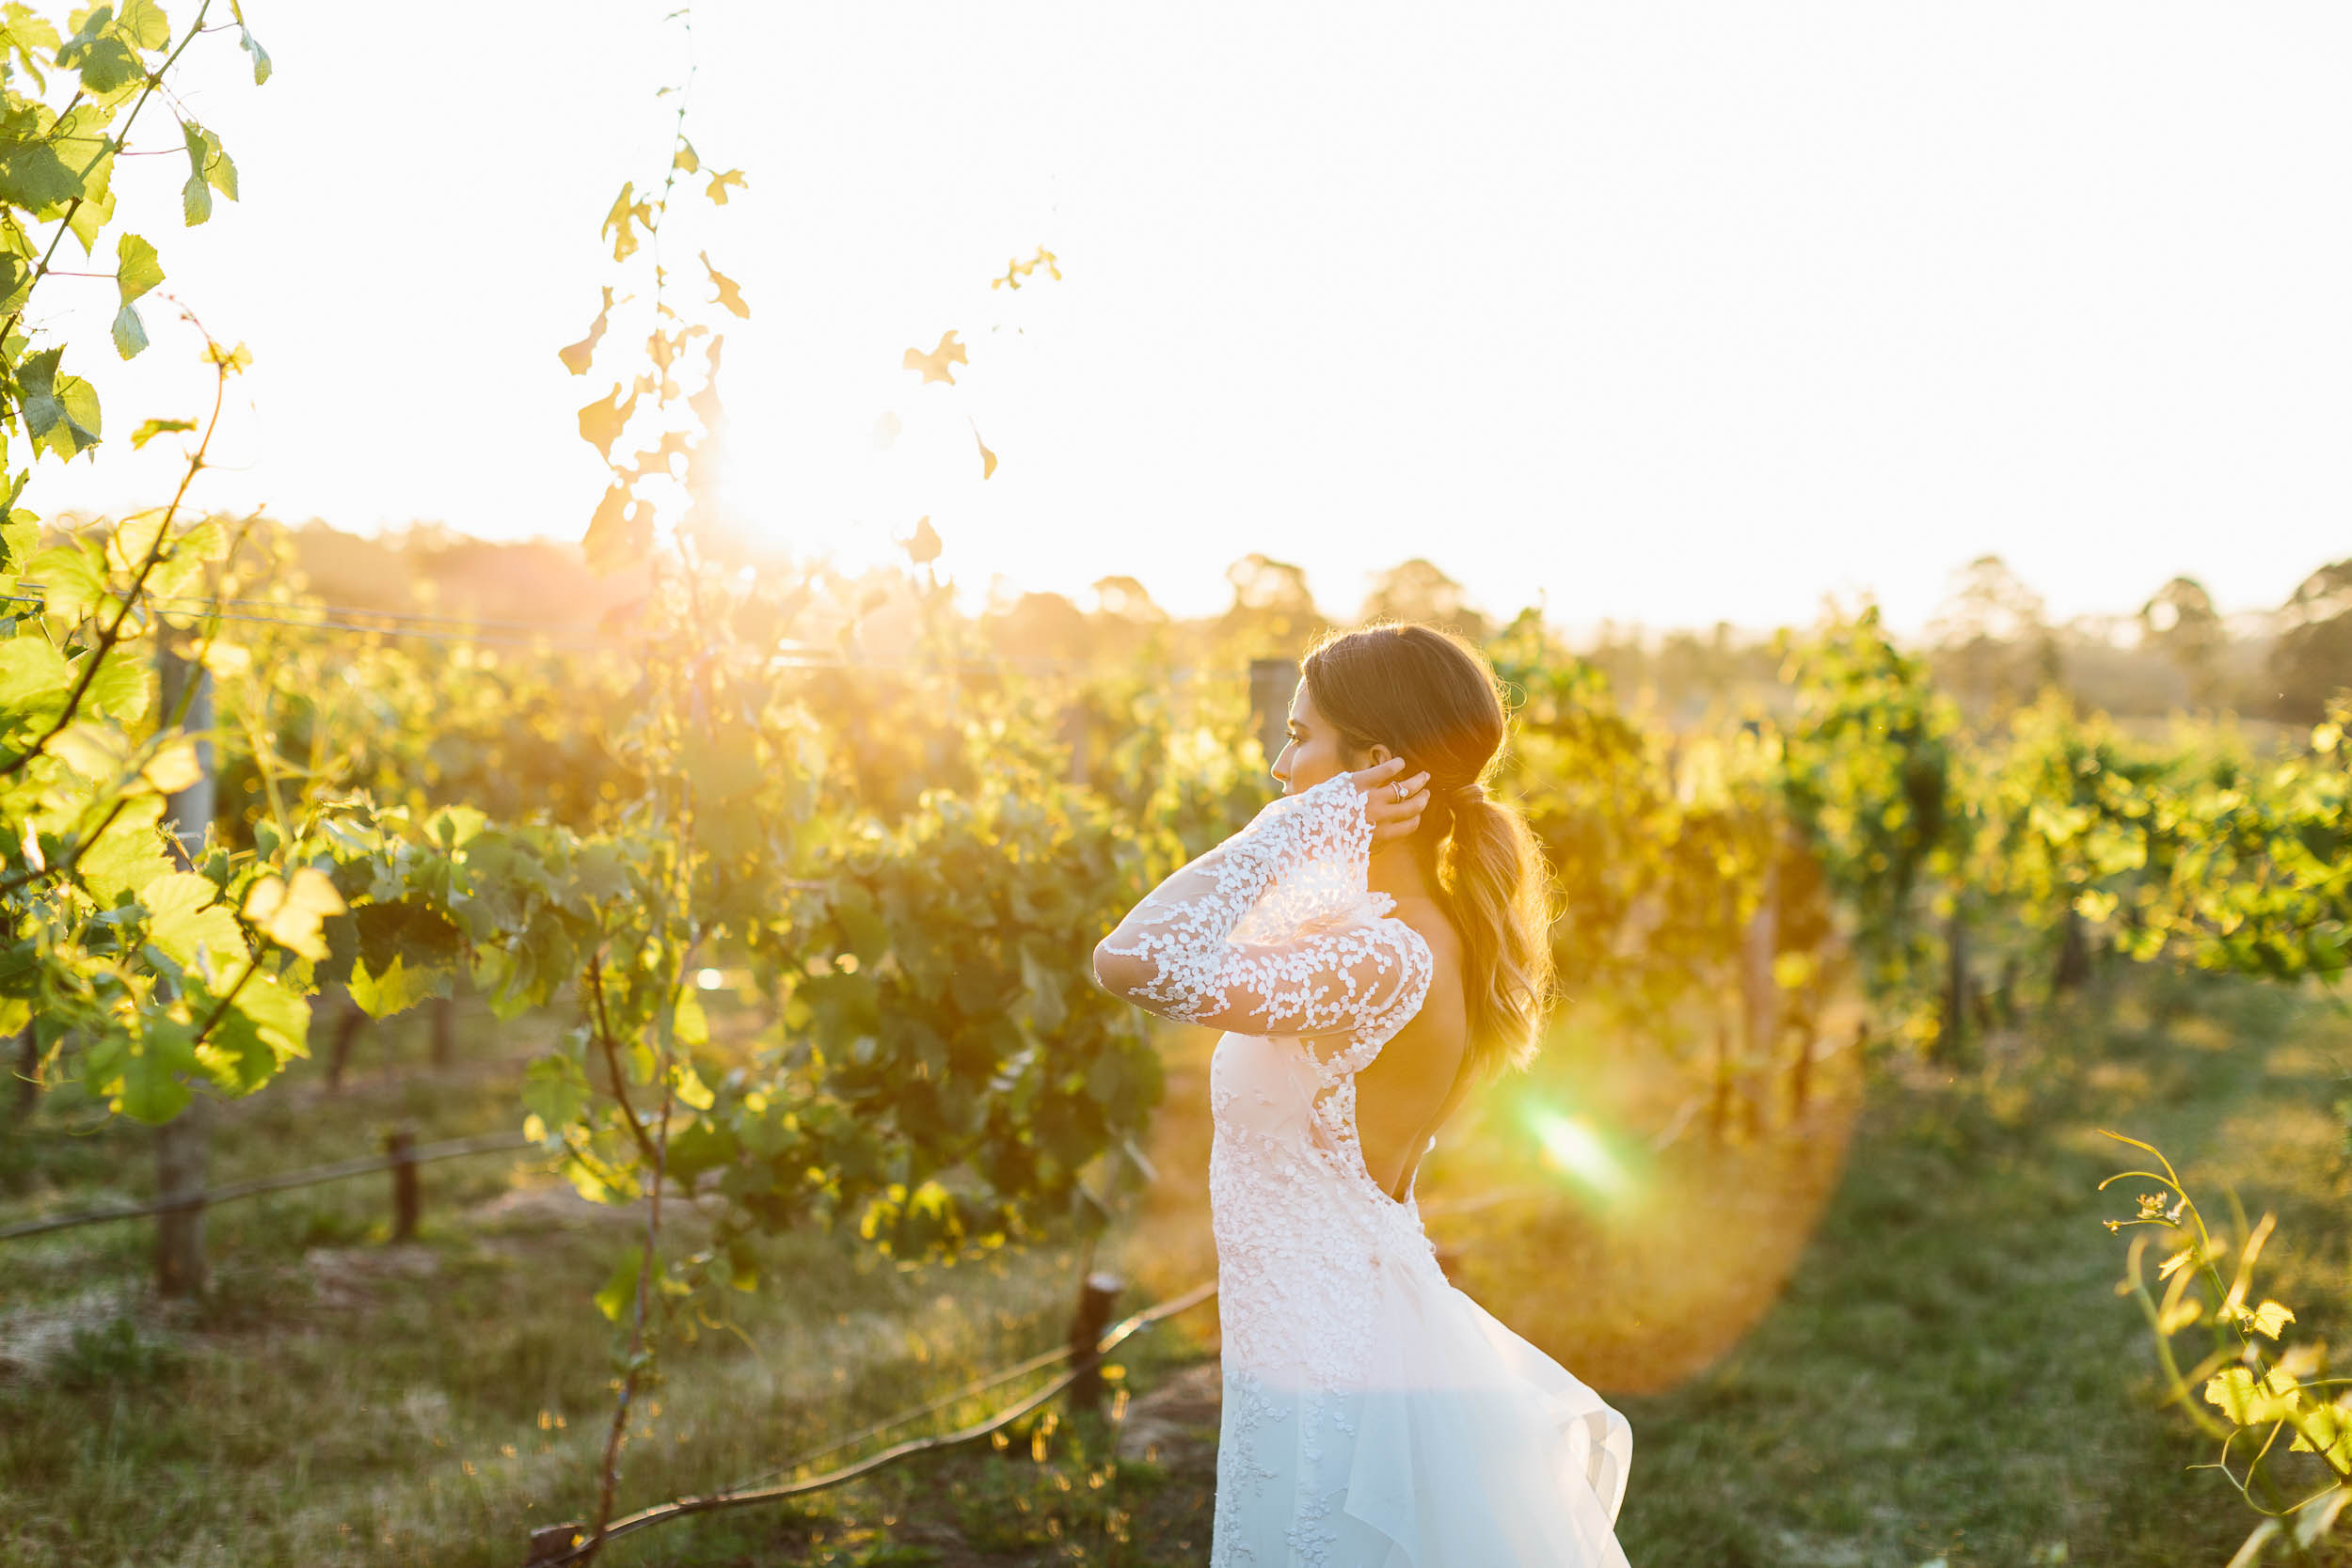 Kas-Richards-Wedding-Ediorial-Photographer-Mornington-Peninsula-Winery-Wedding-Karen-Willis-Holmes-Gown-Pop-up-with-Style-Planners-27.jpg